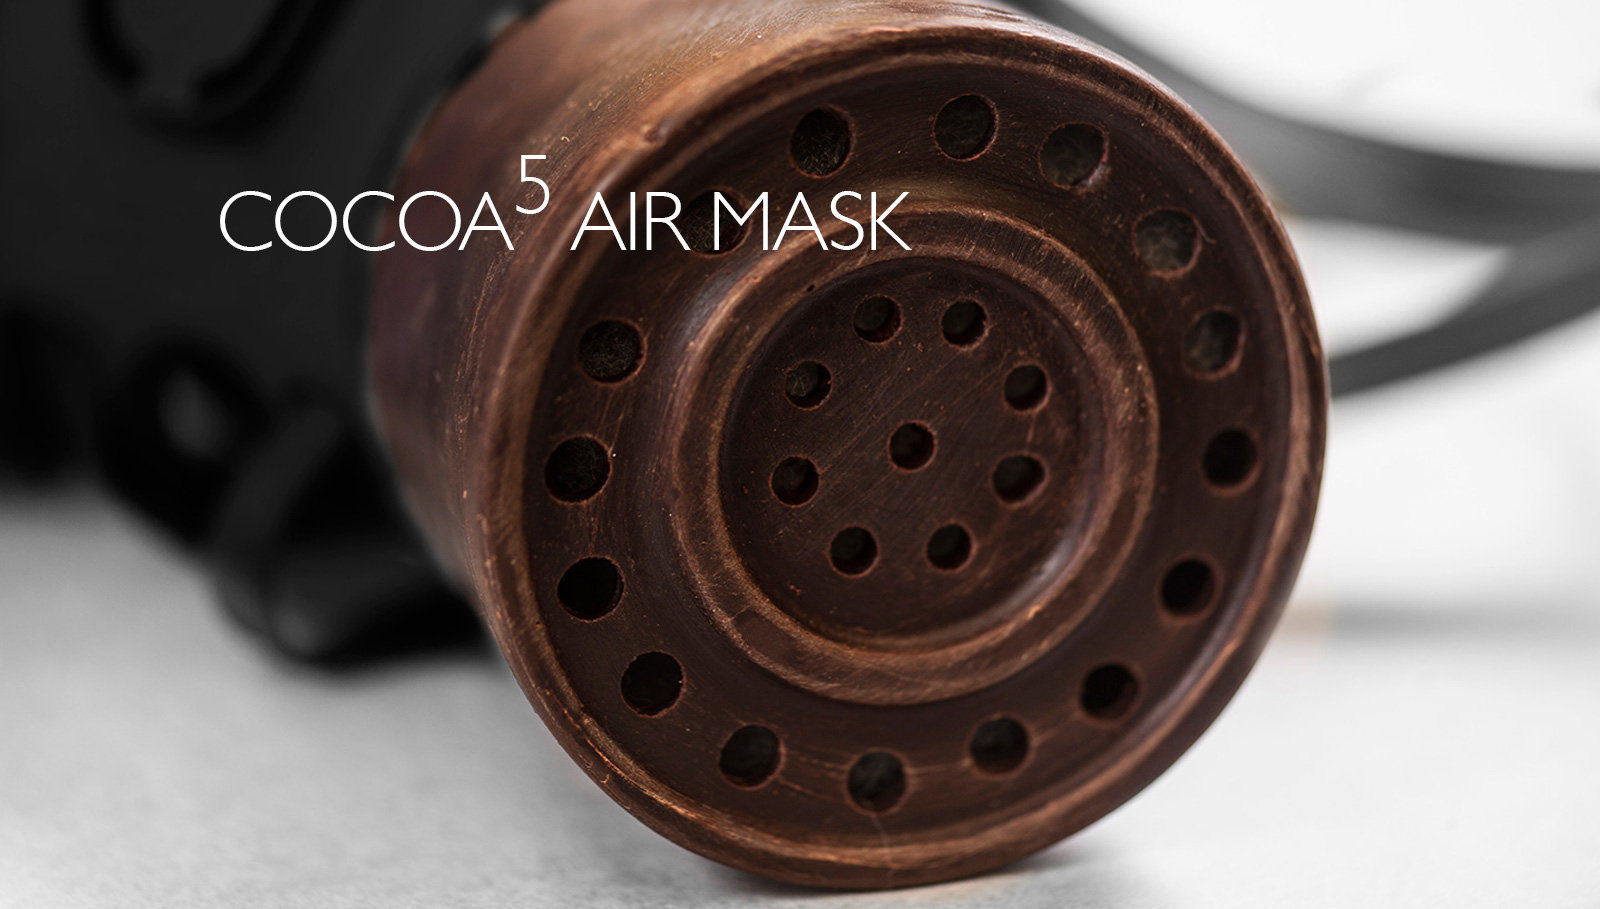 Cocoa-Air-Mask-1-black-detail2